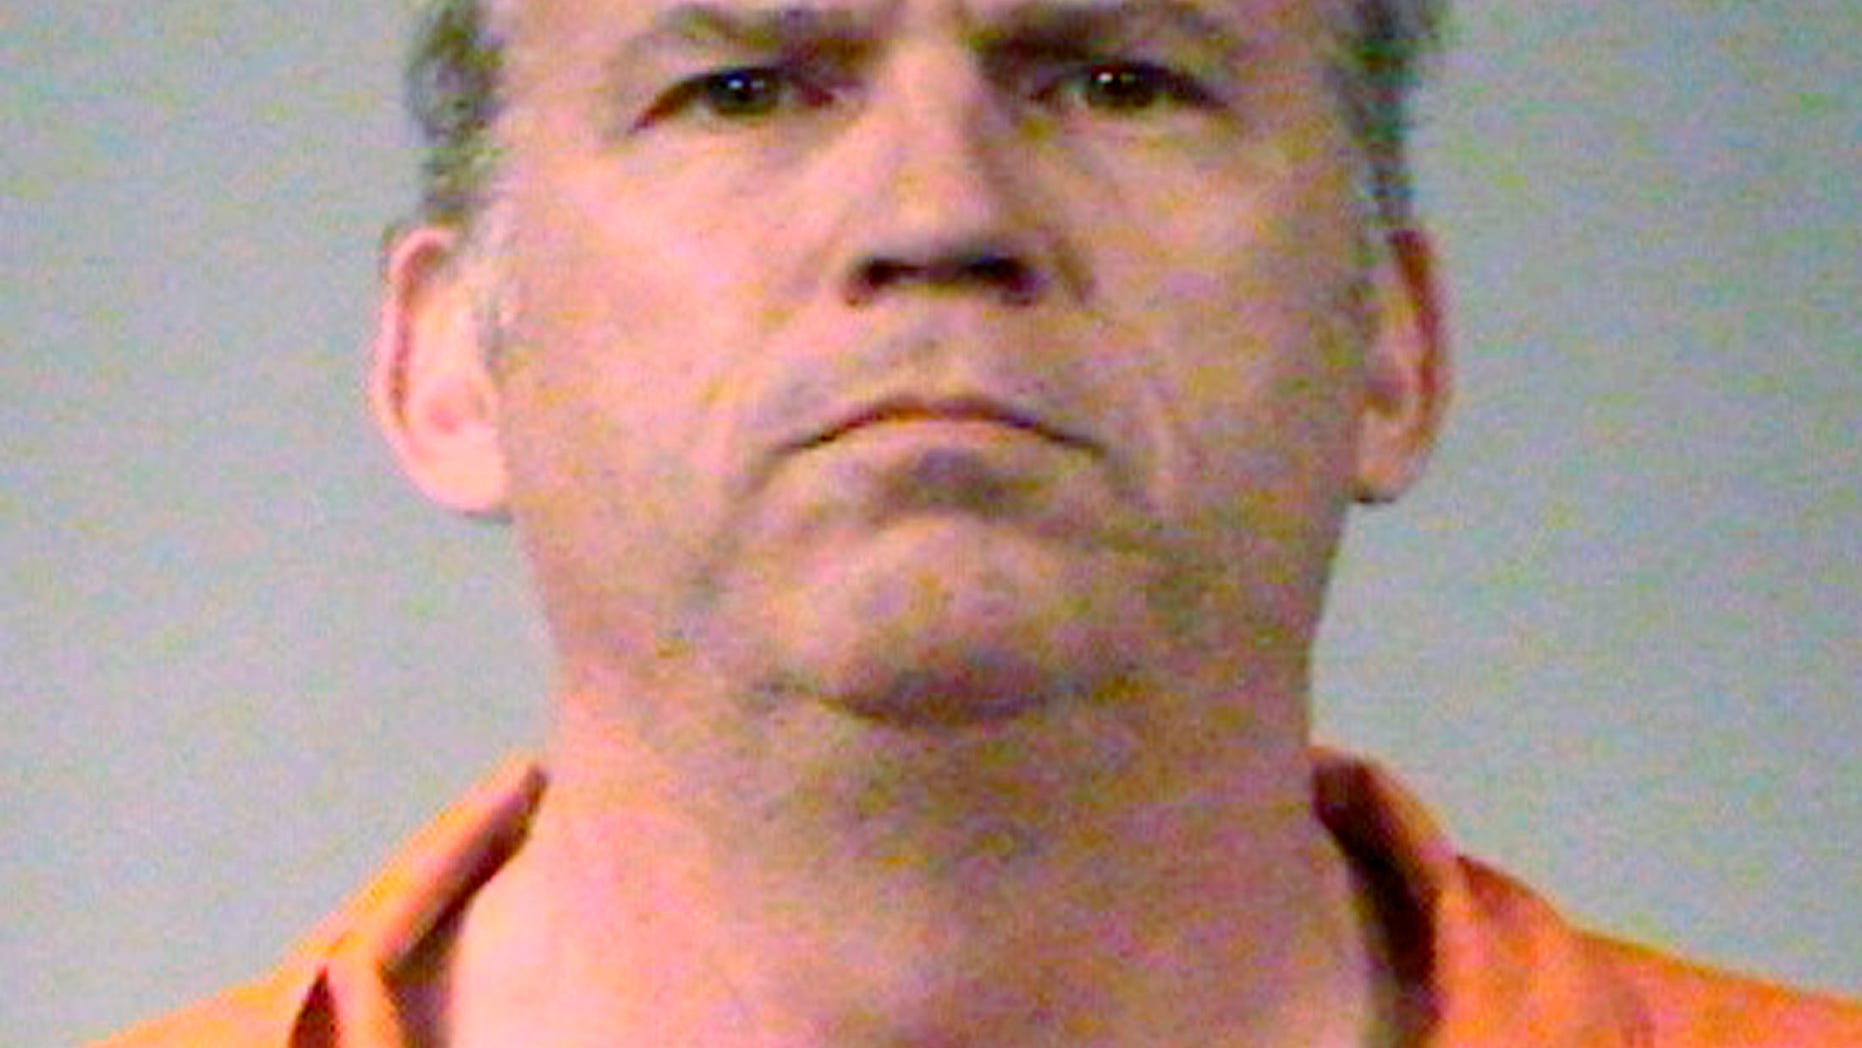 Scott Roeder, 51-year-old Kansas City-area man charged with murder of Kansas abortion doctor George Tiller, is seen in this undated booking photograph